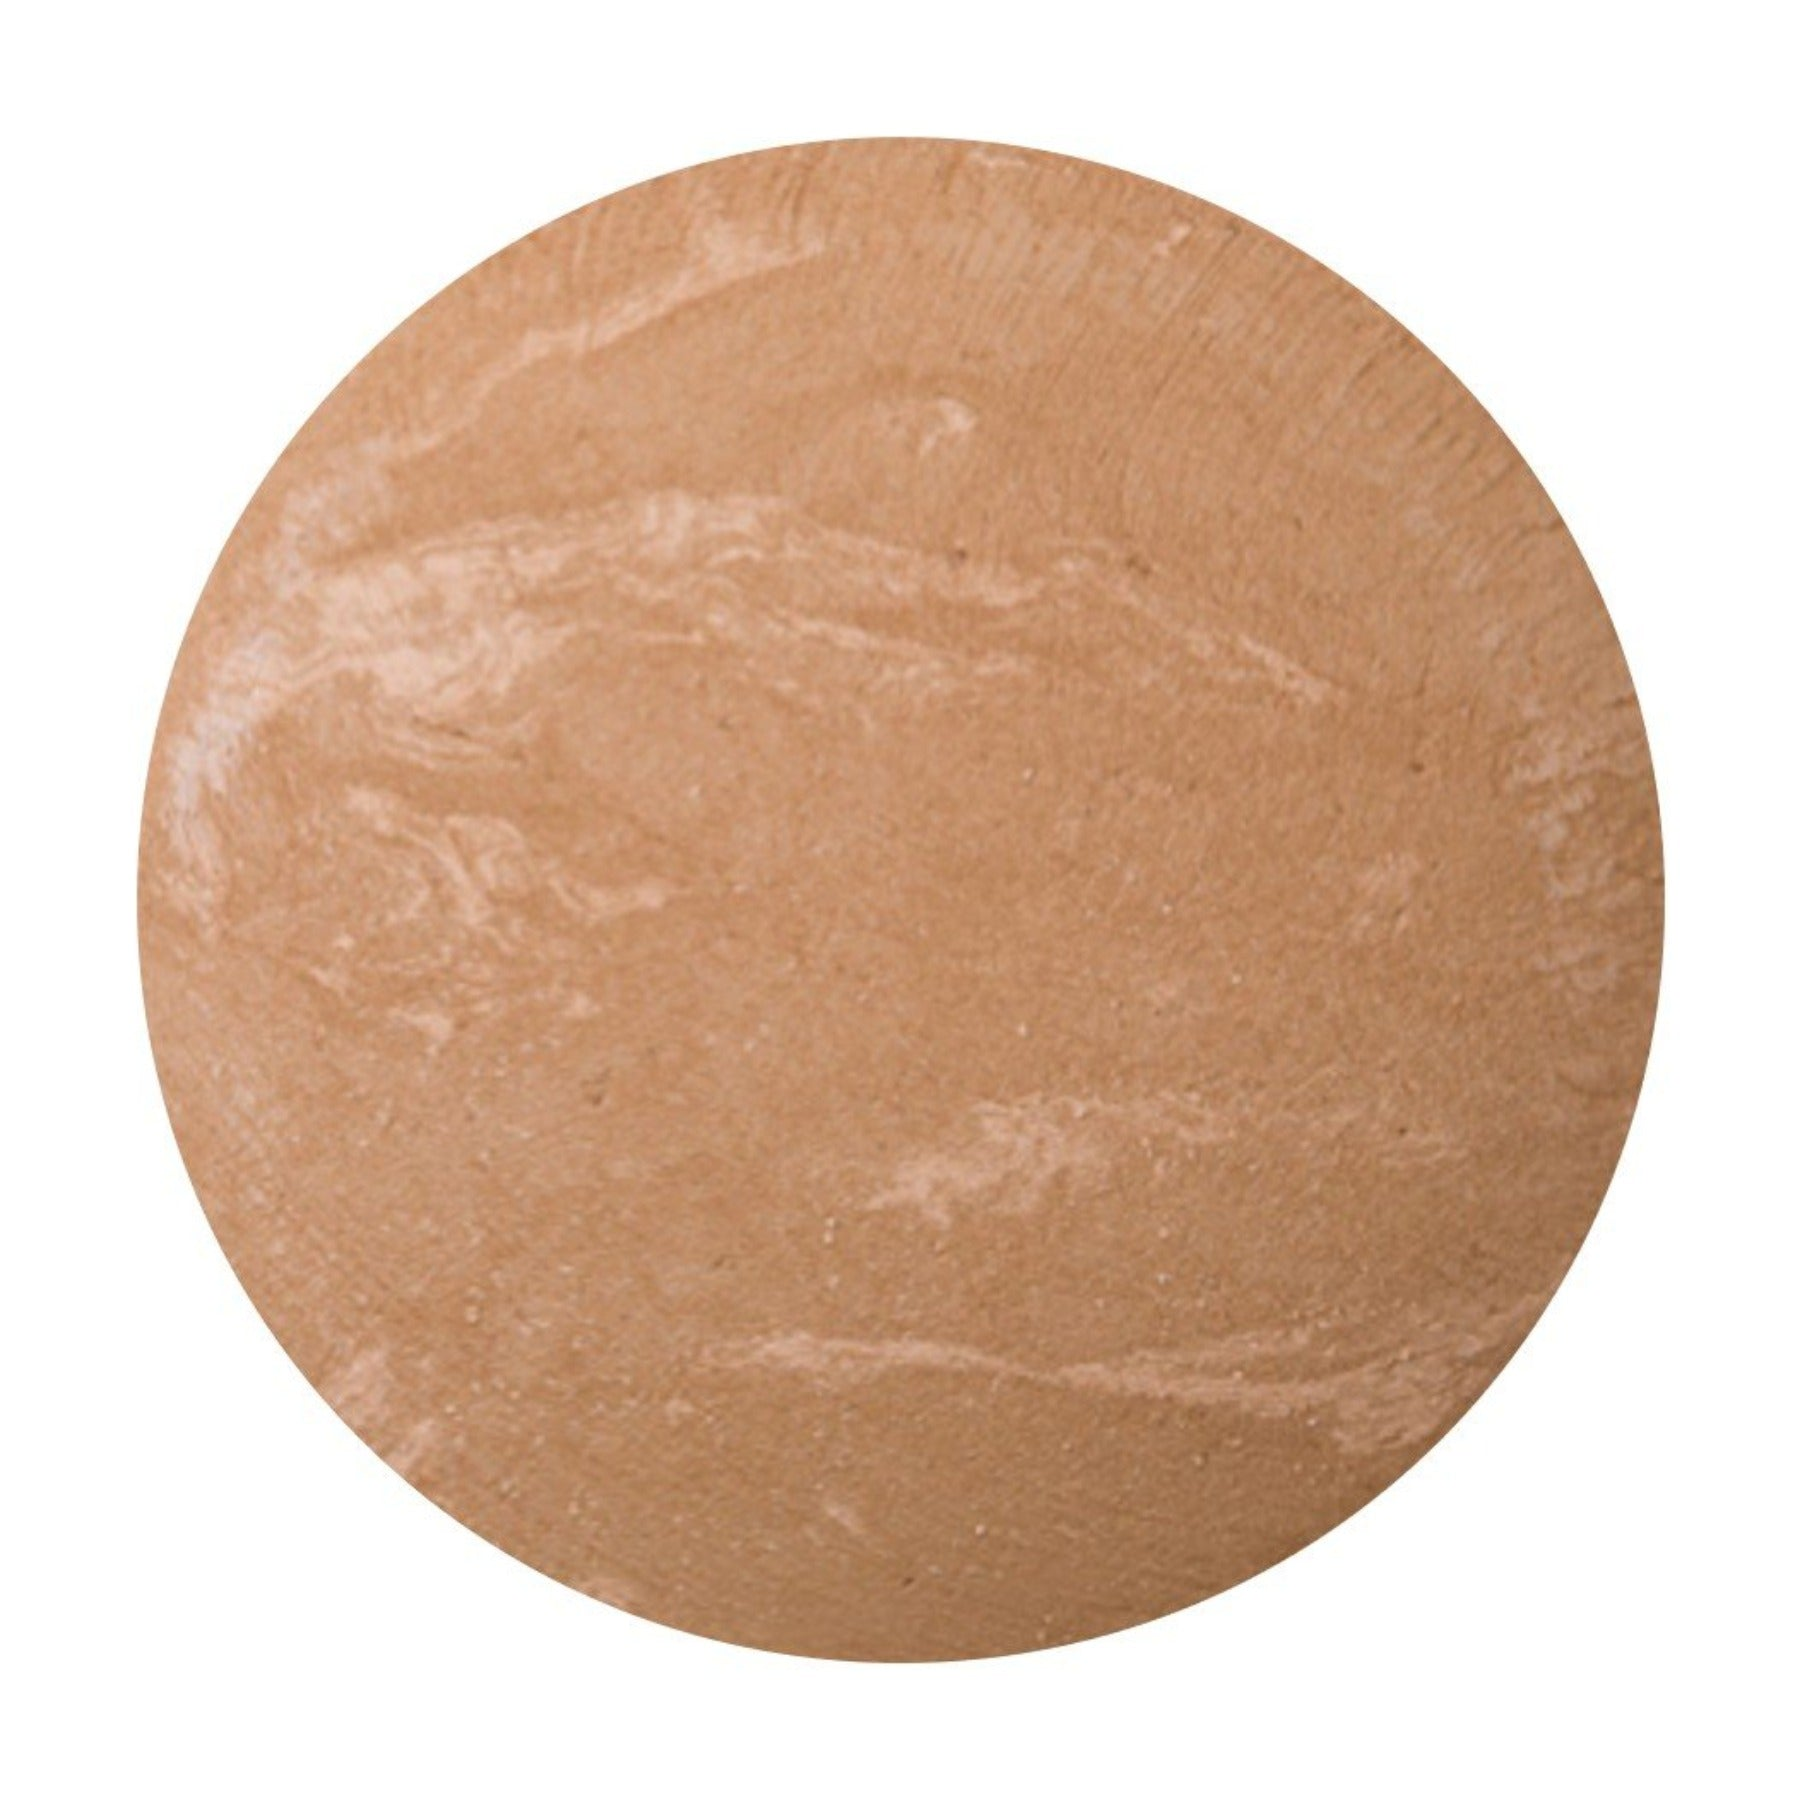 Malt Adaptive Pressed Powder